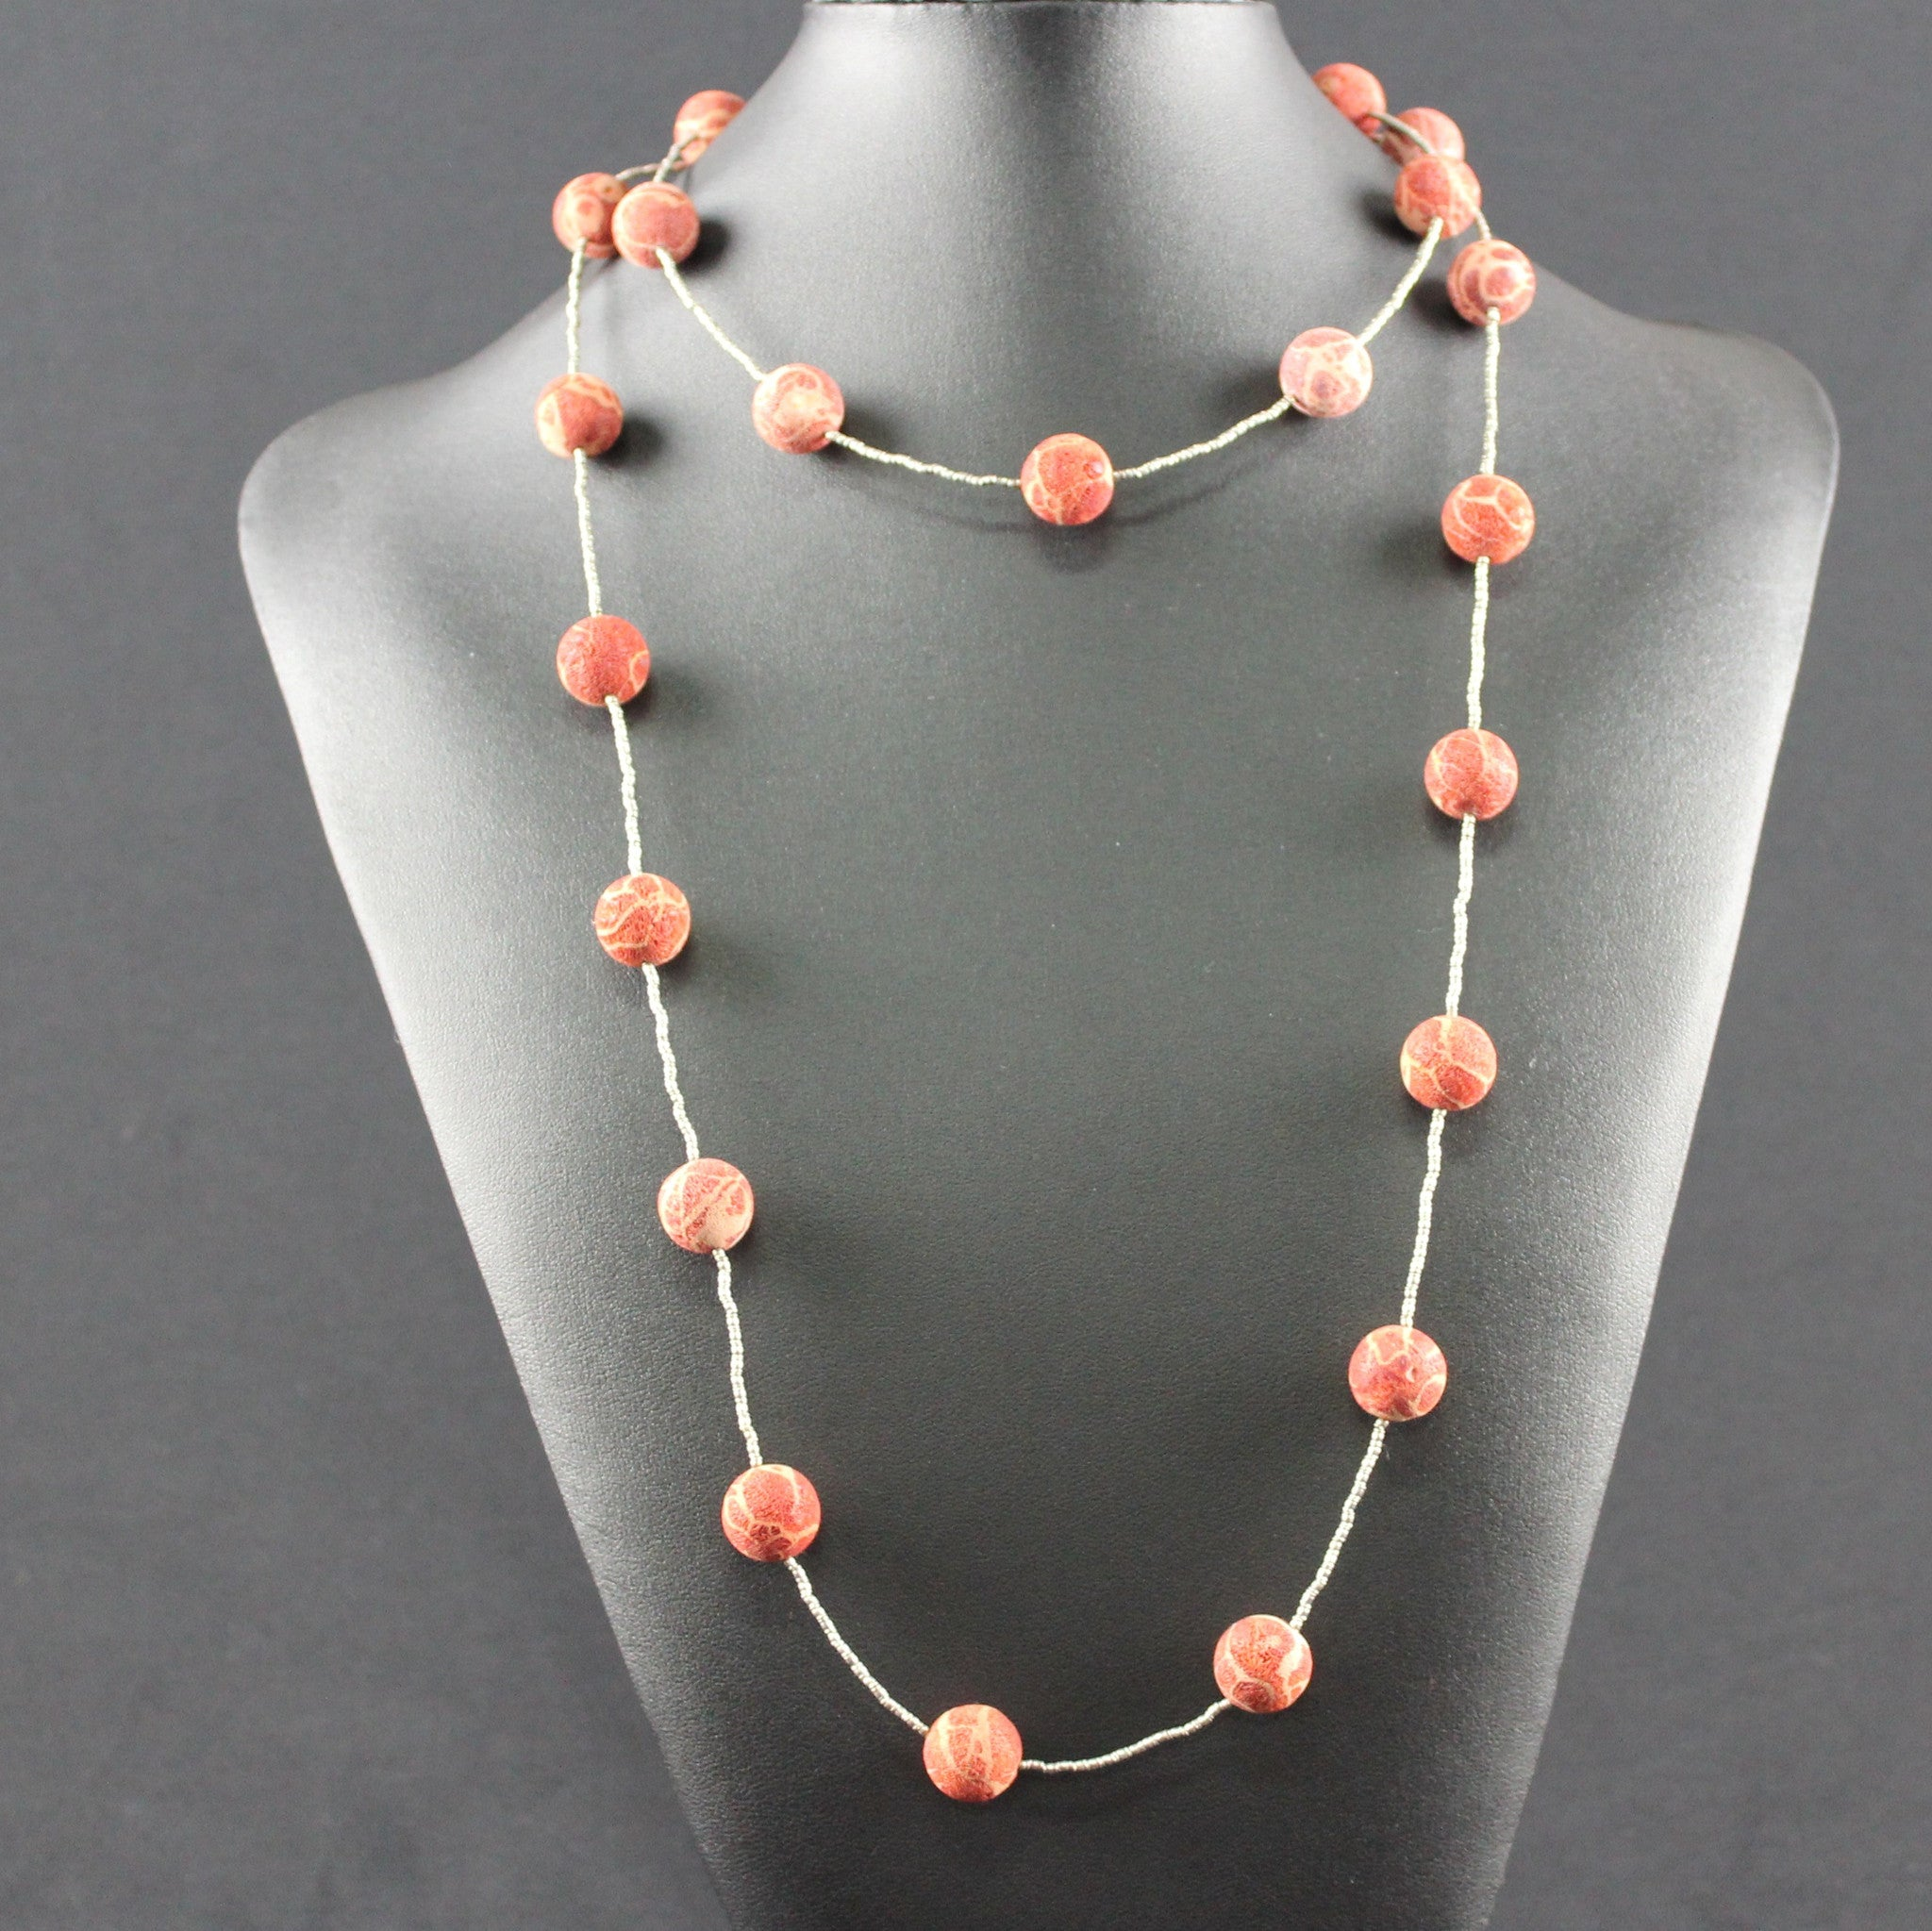 Susan M - Soft coral beads and Thai silver Necklace